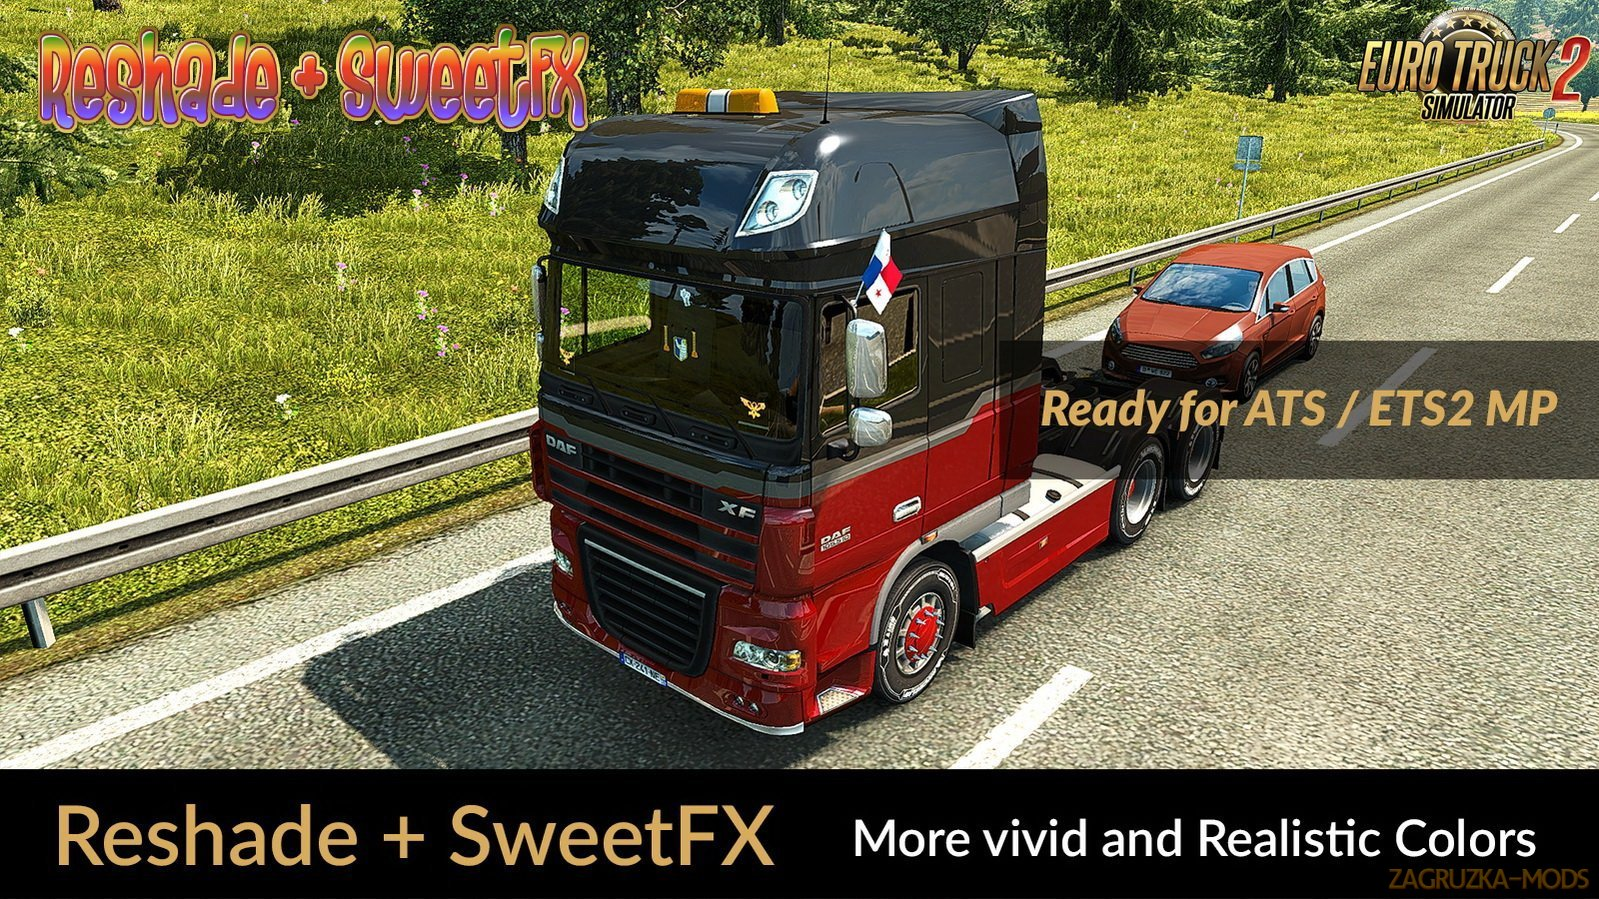 Realistic Lighting 2 JBX - Preset v1.9.6 (Reshade and SweetFX) (1.30.x) for ETS 2